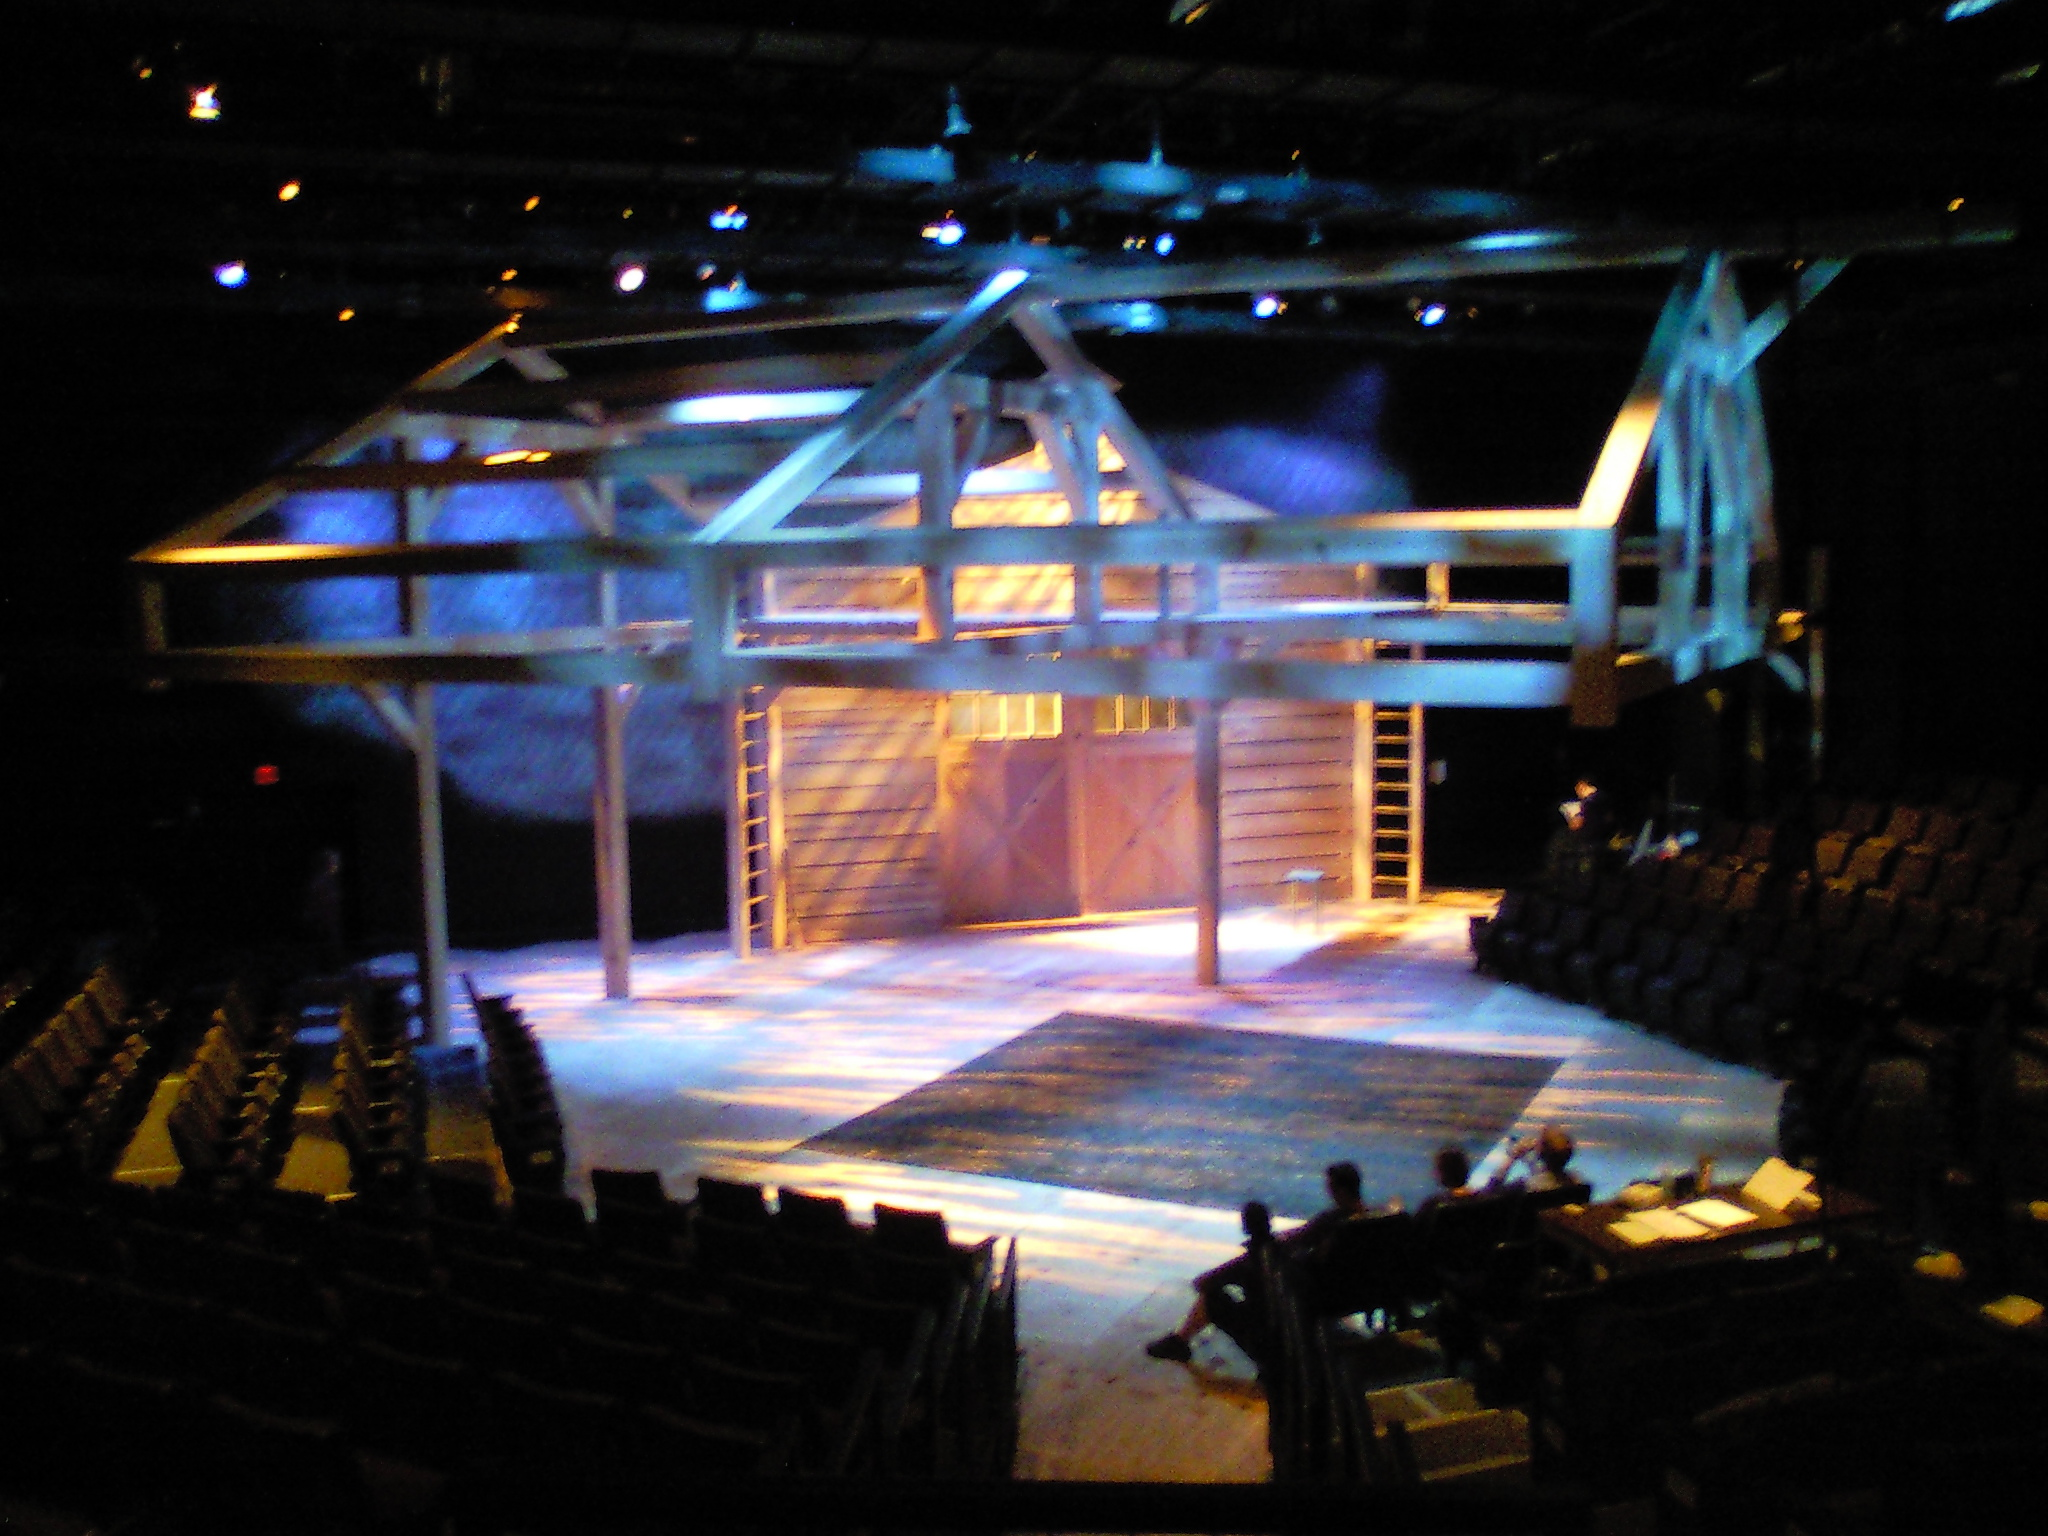 Charlotte's Web  finished set.  The show used an actual pit of dirt and mud, a fun production challenge for sure!